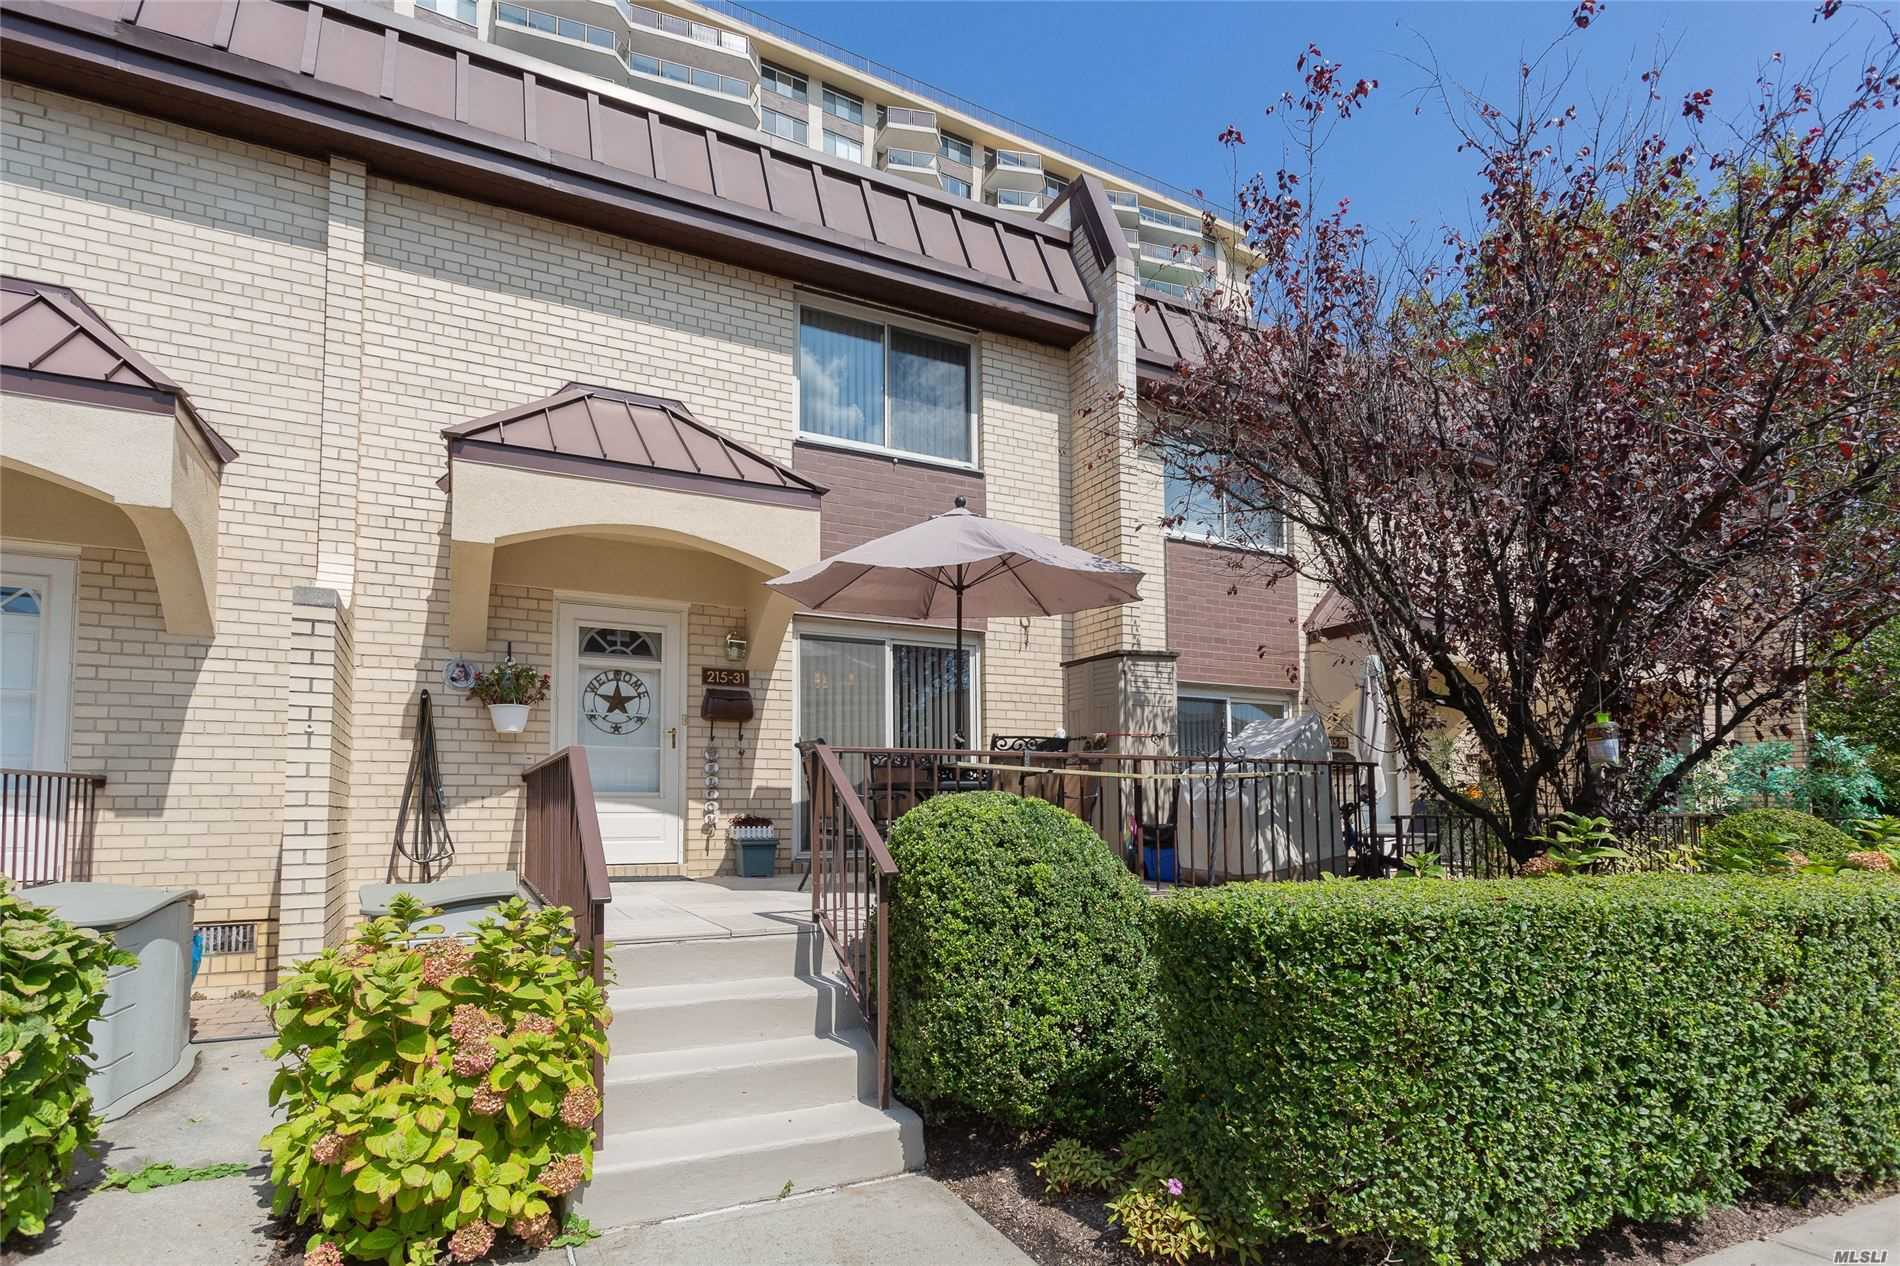 Well maintained 1400 SqFt Duplex Townhouse, 3BR, 2.5Baths, Hardwood floors, Stainless Steel Appliances, Washer&Dryer, 5 zone heating/AC. Near to shopping, LIRR, Express bus, City Bus, School District #26.  Complex has  24hr security, Inground Pool, Gym, Tennis Courts, Cafe/Grocery Store, Hair salon, and Cleaners.  Parking available. Maintenance breakdown: Main $1971.48, Utilities $165, Energy assessment $73.21,  AMV maintenance $100, AMV garage $150